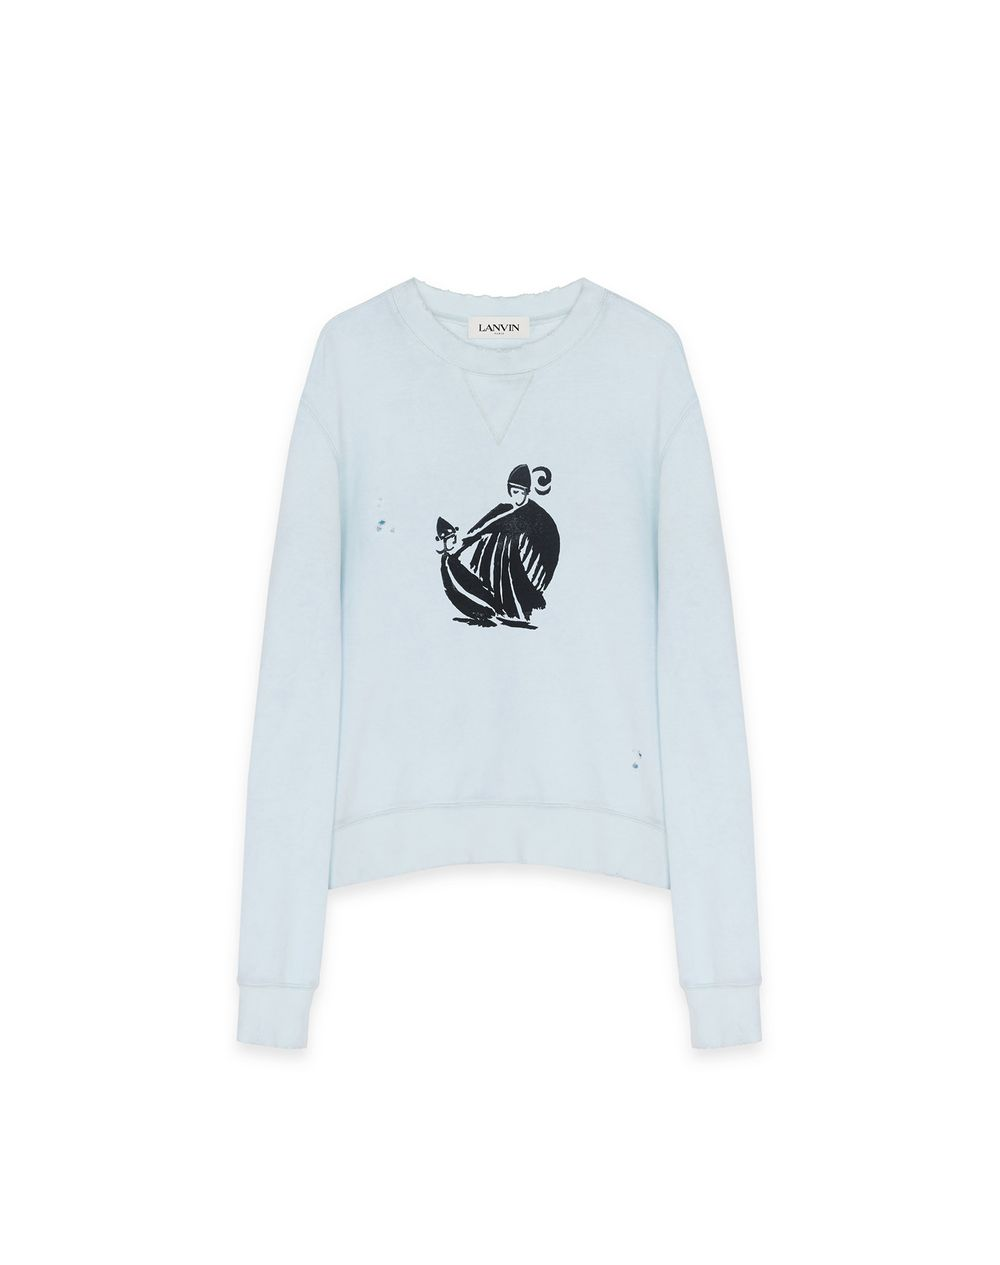 MOTHER AND CHILD SWEATSHIRT - Lanvin